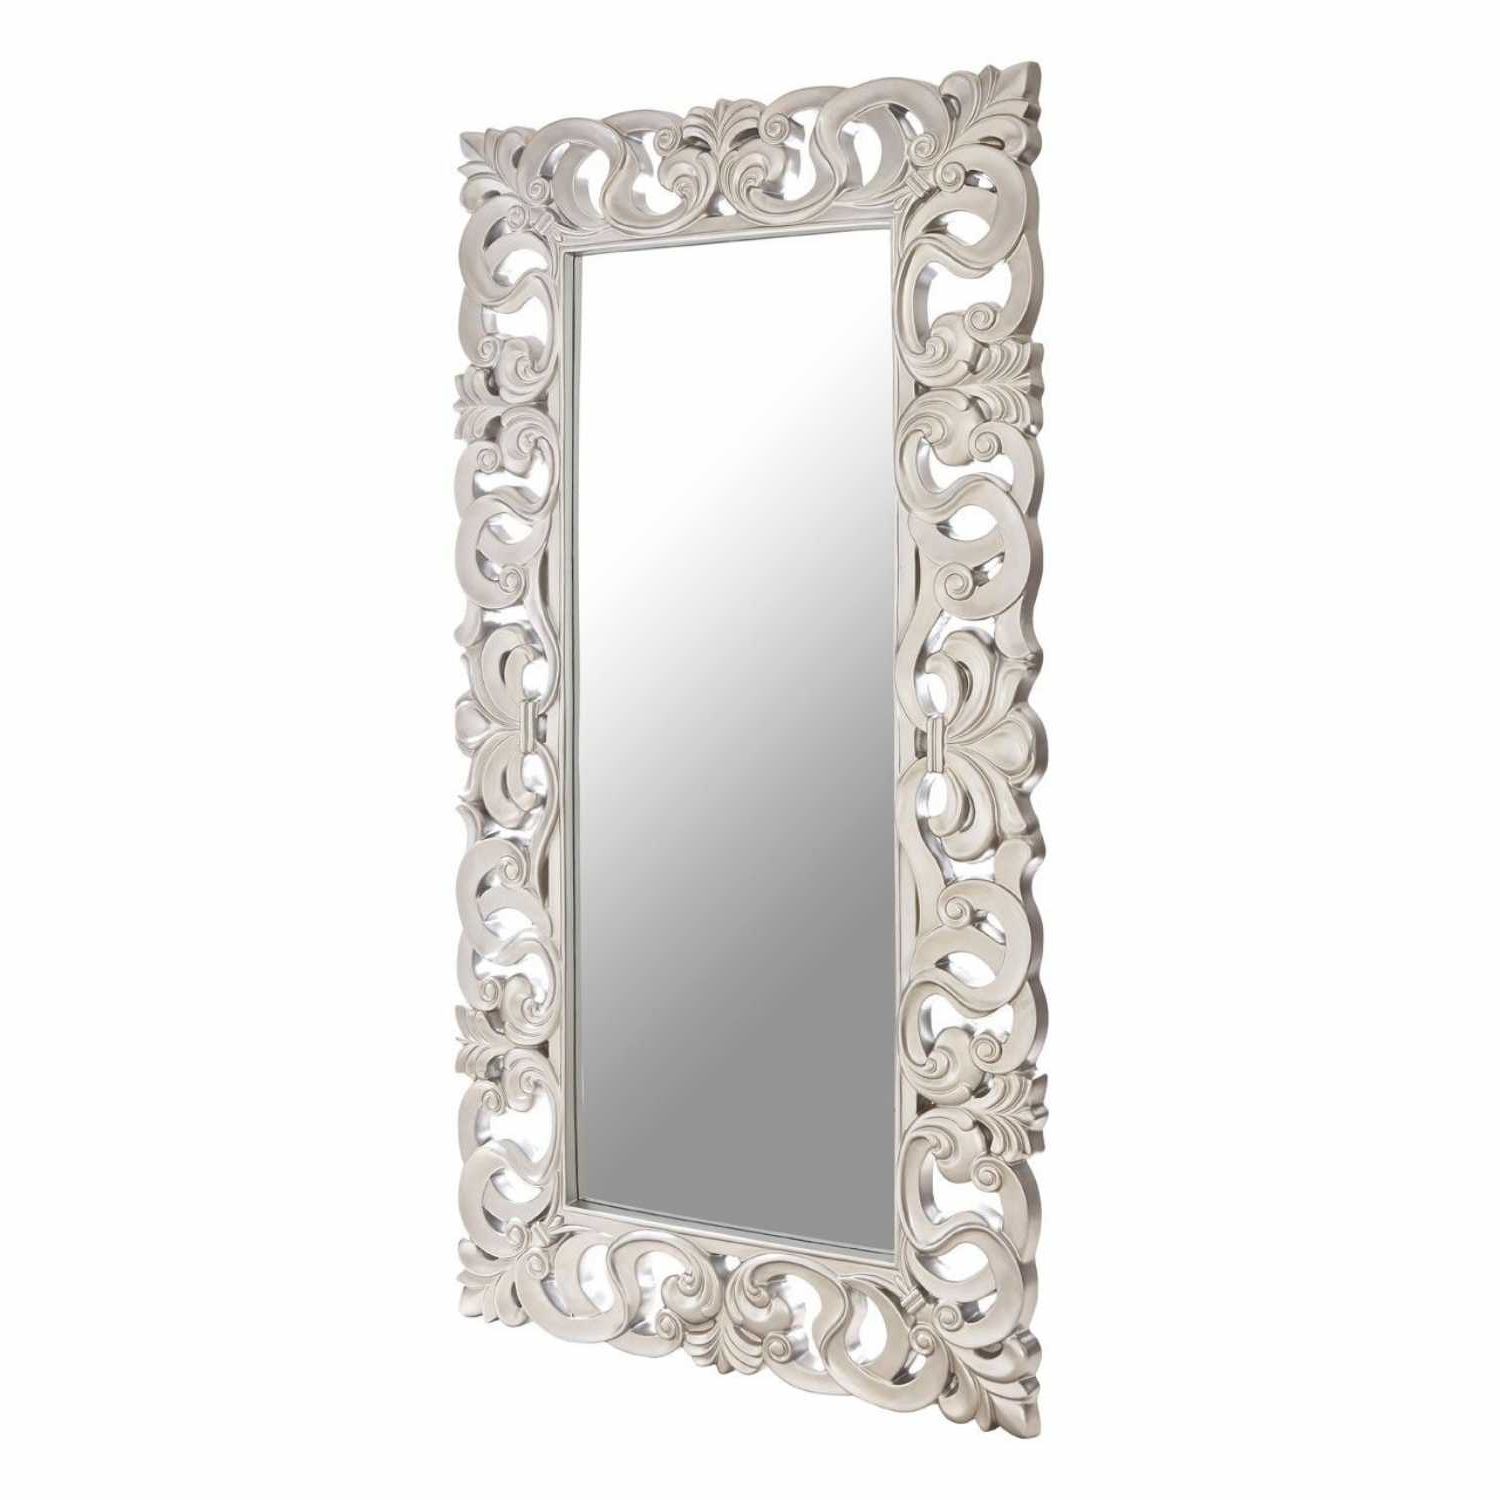 Current Large Modern Silver Finish Ornate Rectangular Decorative Wall Mirror Pertaining To Large Rectangular Wall Mirrors (View 7 of 20)